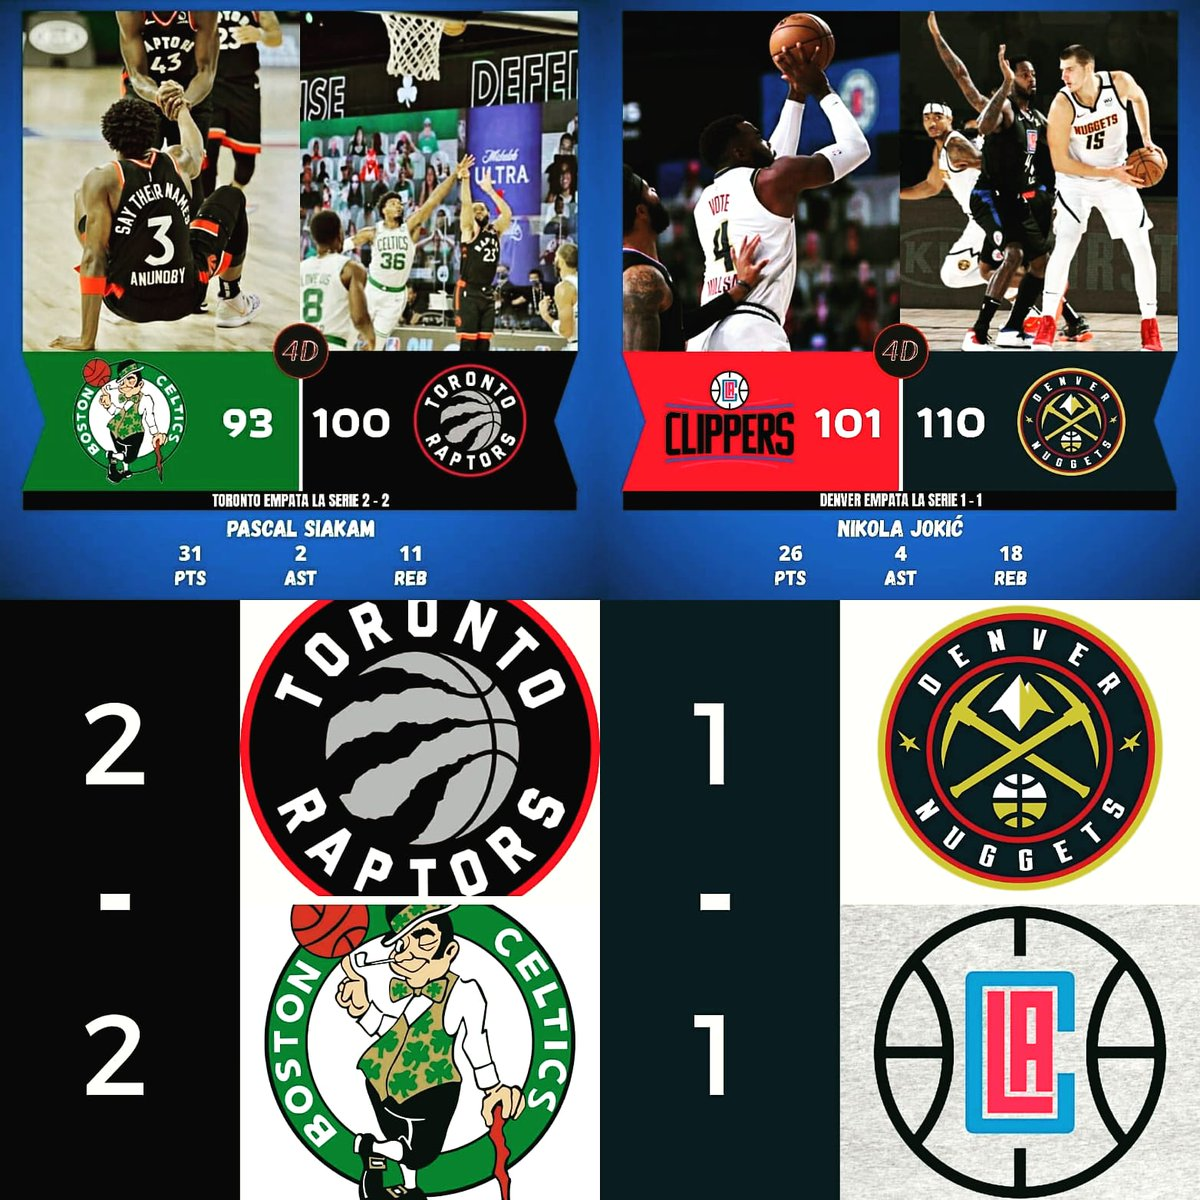 Day # 17 in the Books Raptors  find their groove  and tie the series up and nuggets win game # 2 and tie it up !!! #djstatusphere #louscannon #schweppervescence #hiphop  #nba #basketball  #TNTSports  #RAPTORS  #CELTICS  #LAClippers  #NUGGETS